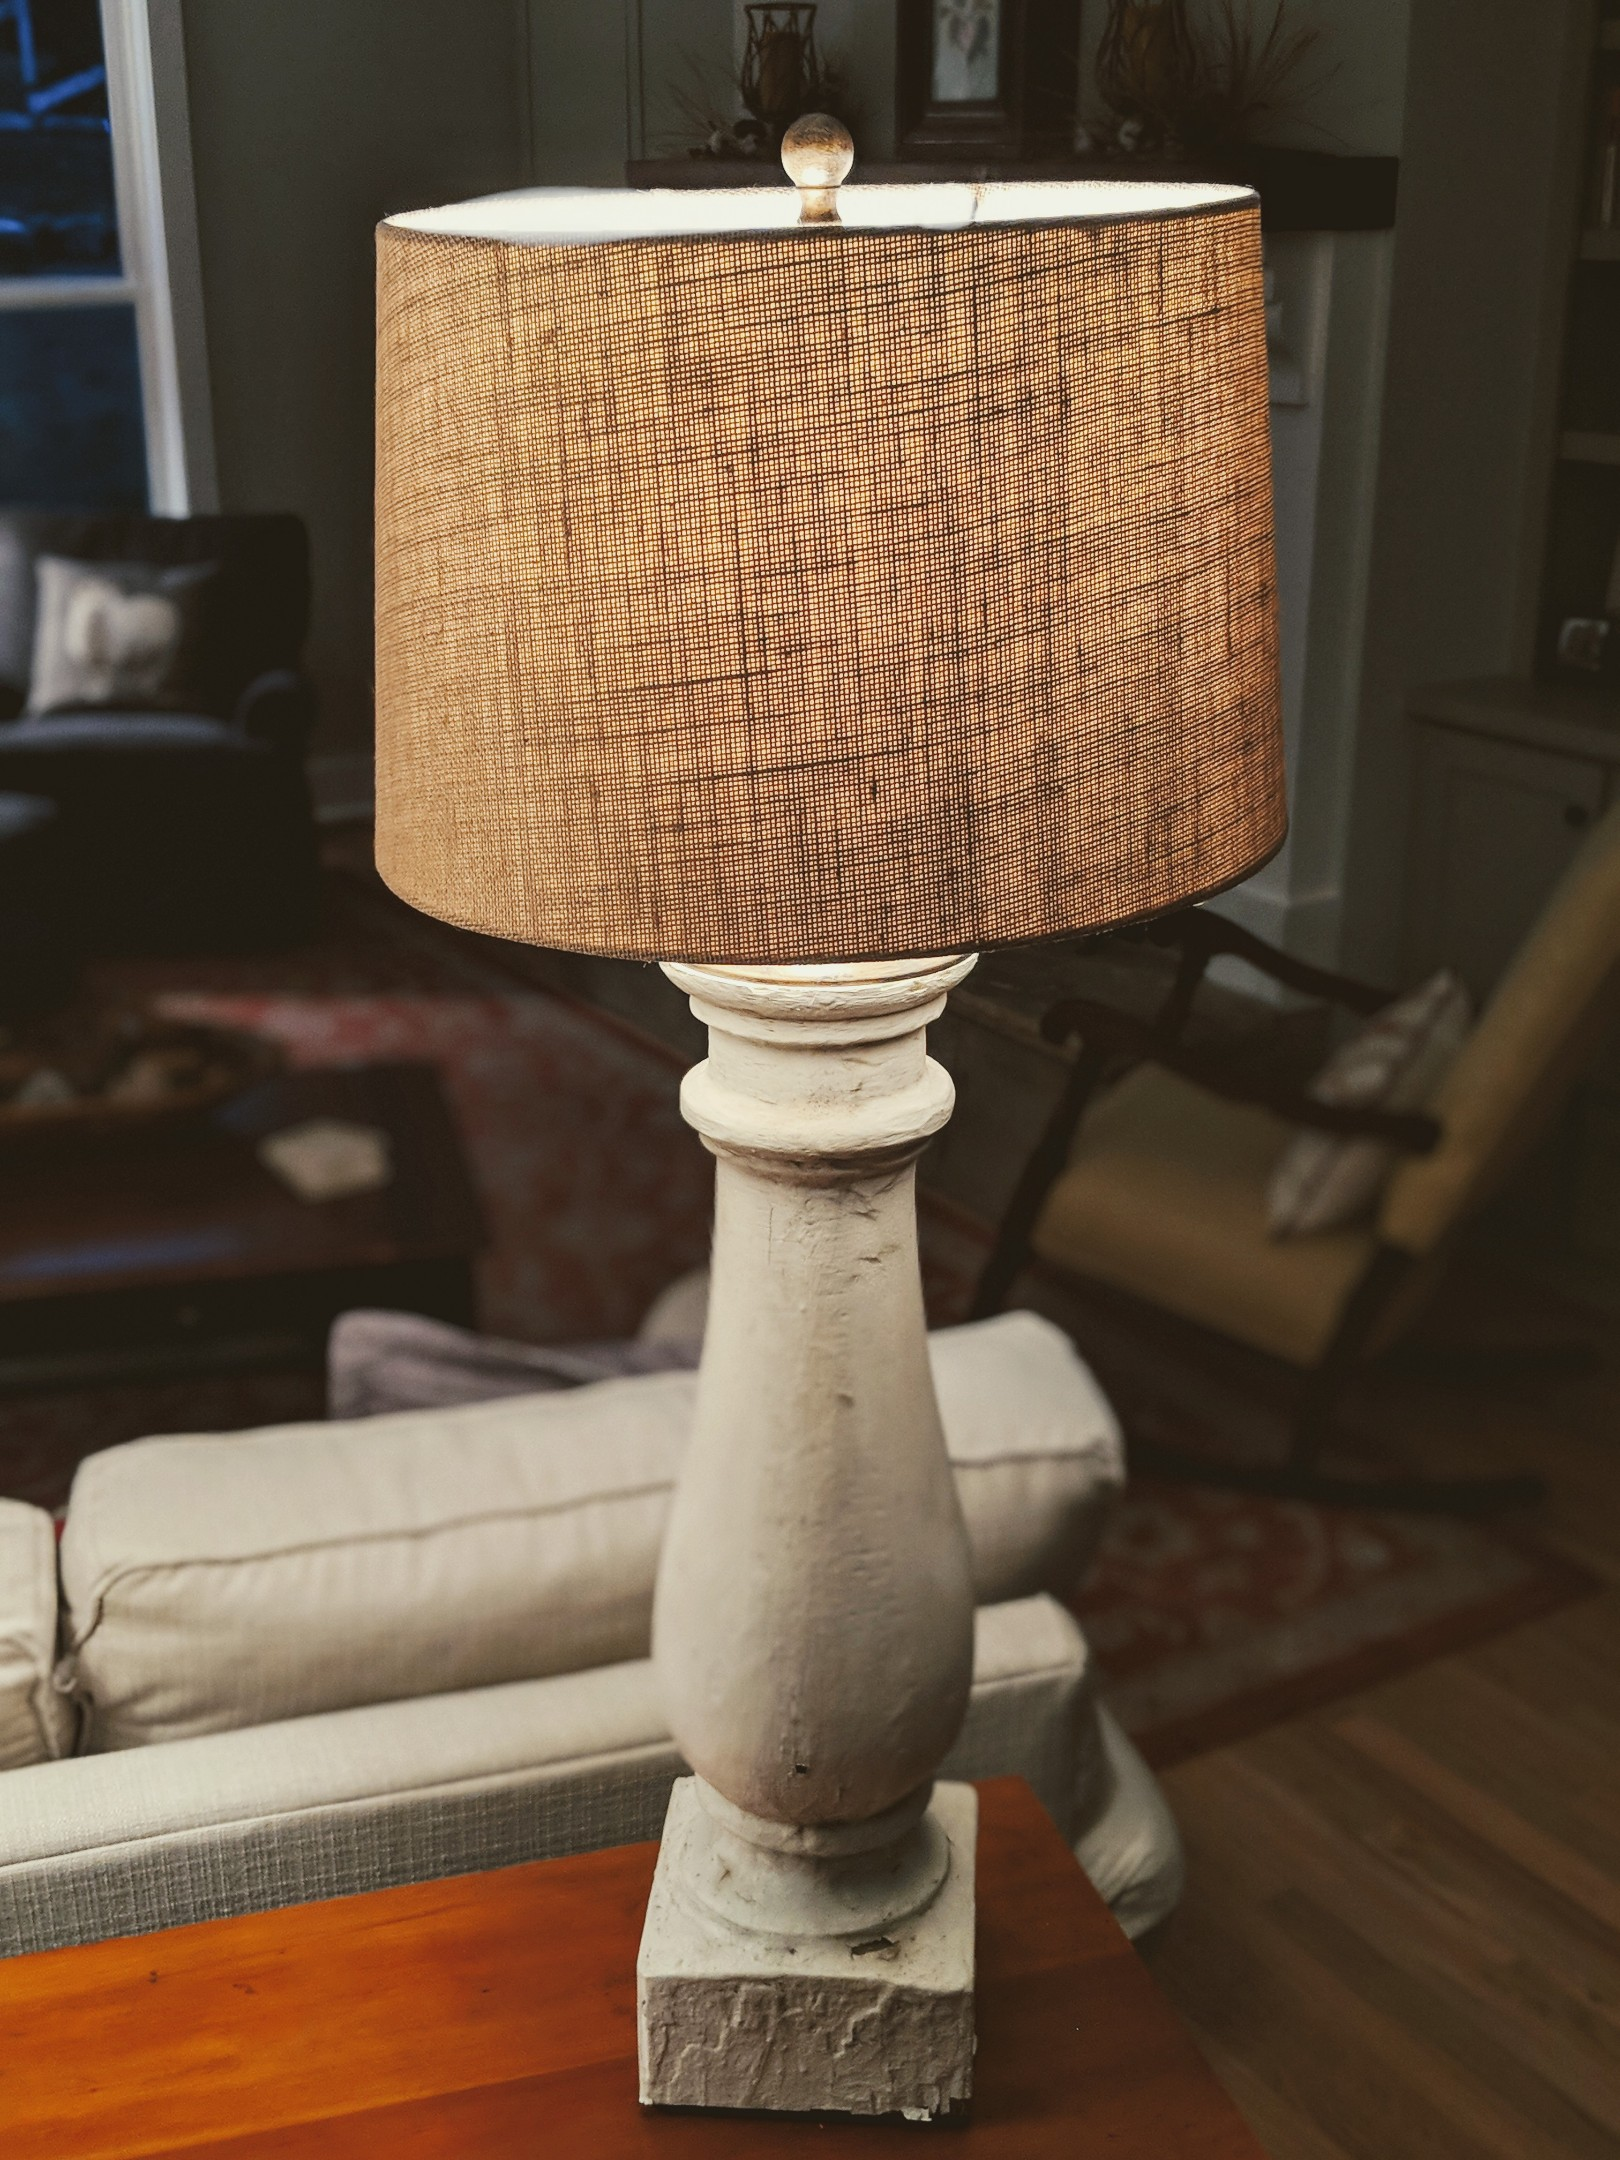 He has a limited supply but can make custom lamps on special order!